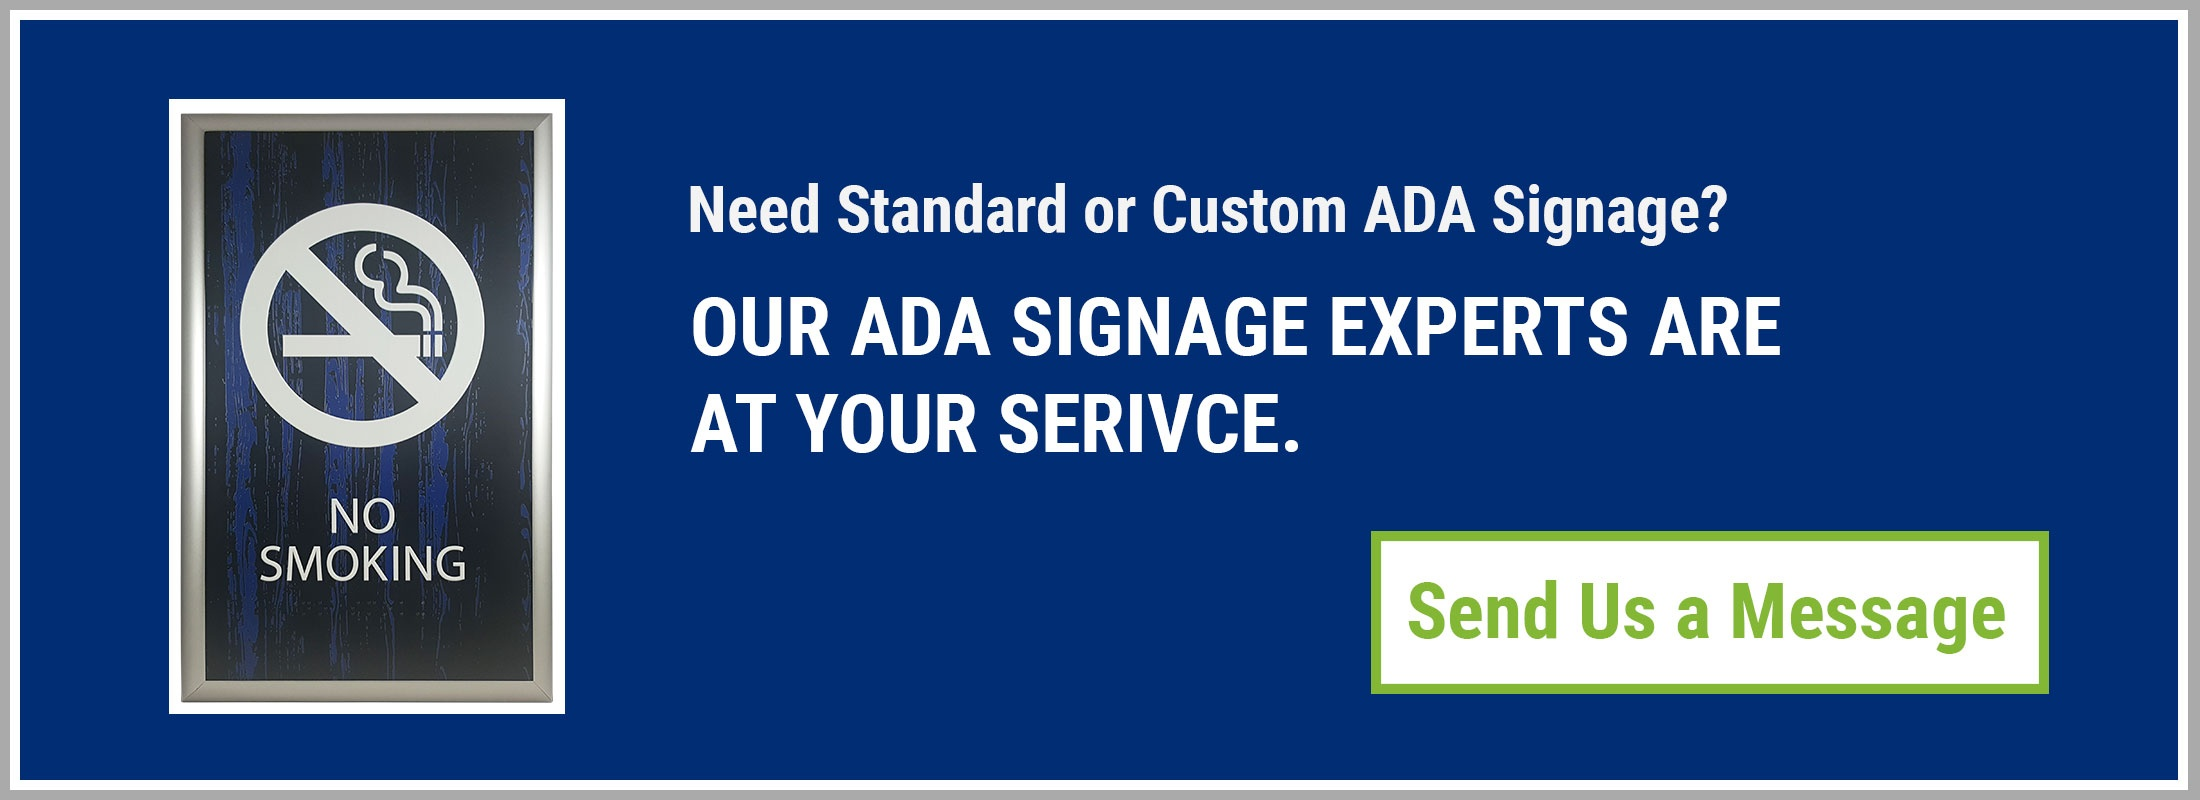 Request a quote or send a message to the ADA Signage Experts at Alpha Dog ADA Signs